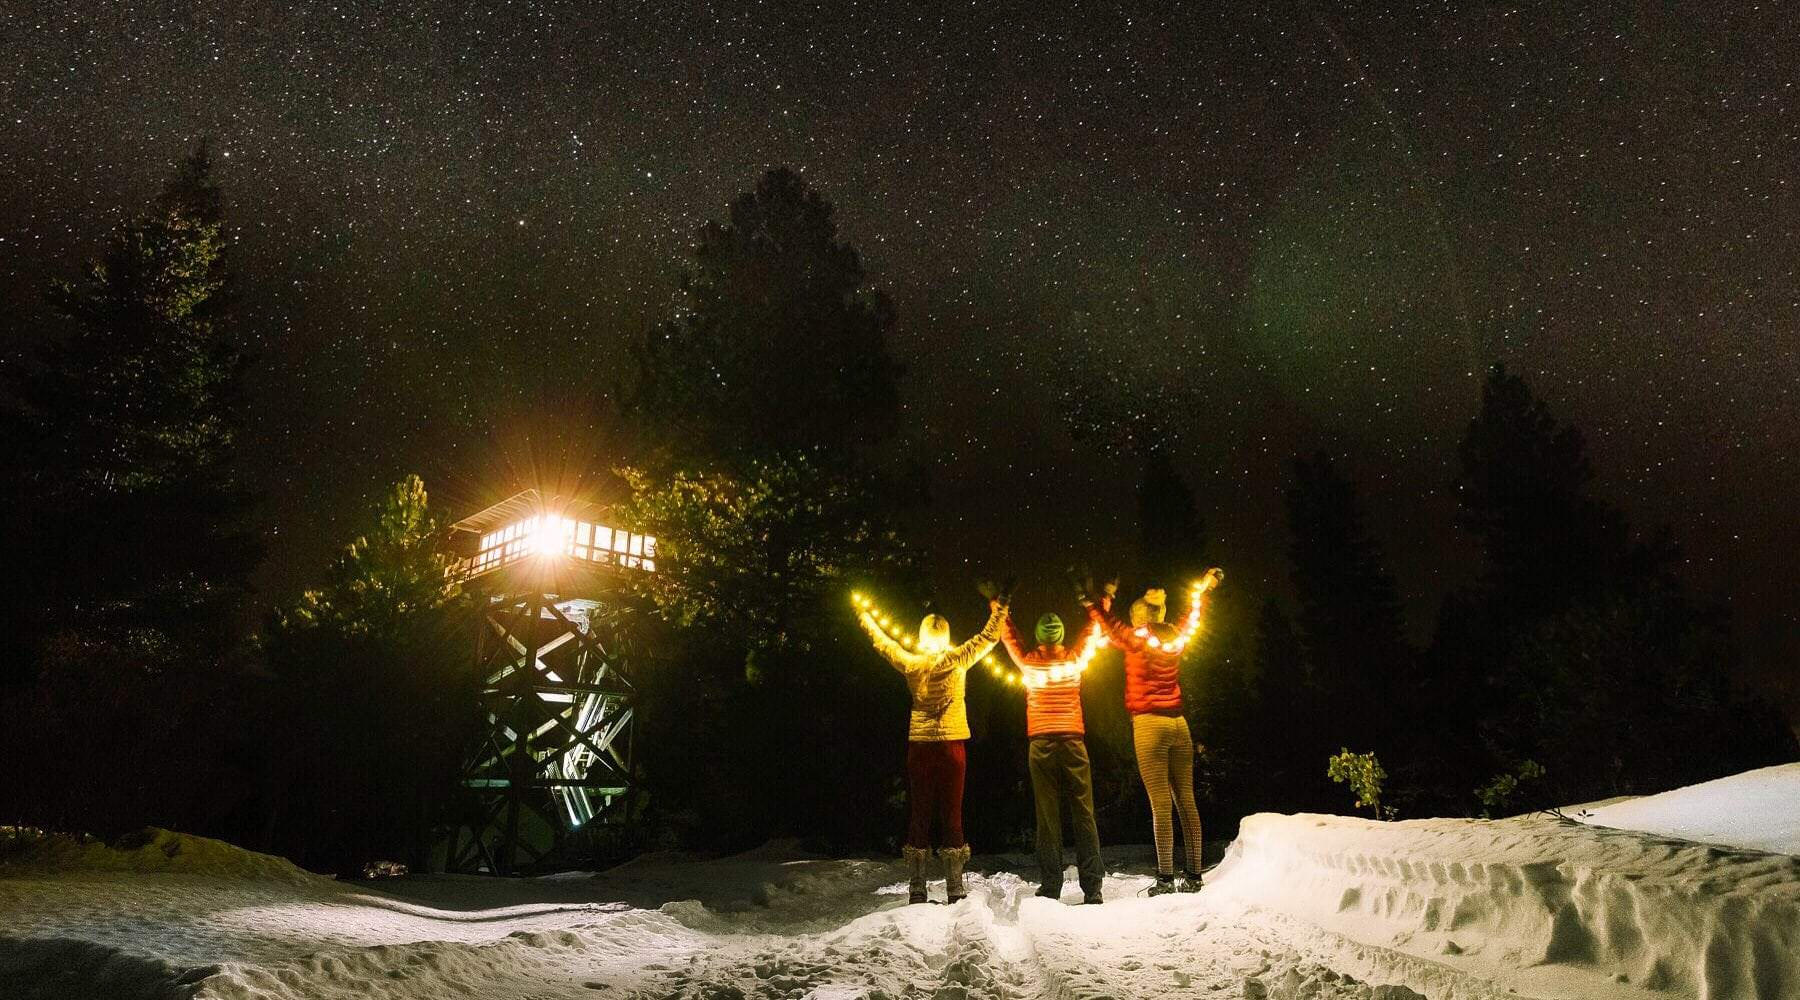 Friends holding lights in front of Fivemile Butte fire lookout at night in snow